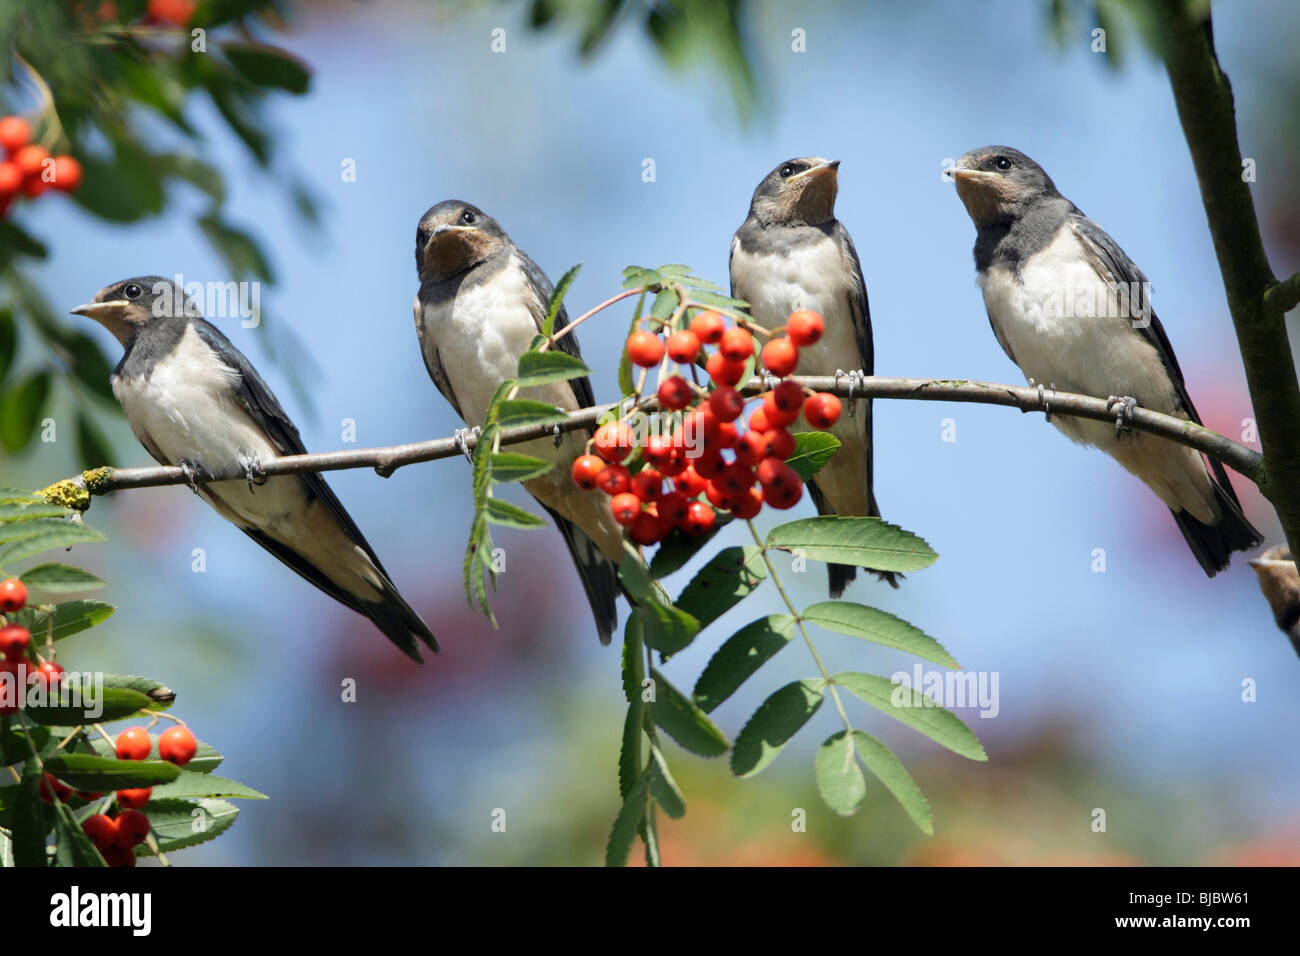 Barn Swallow (Hirundo rustica), 4 young birds perched on branch - Stock Image